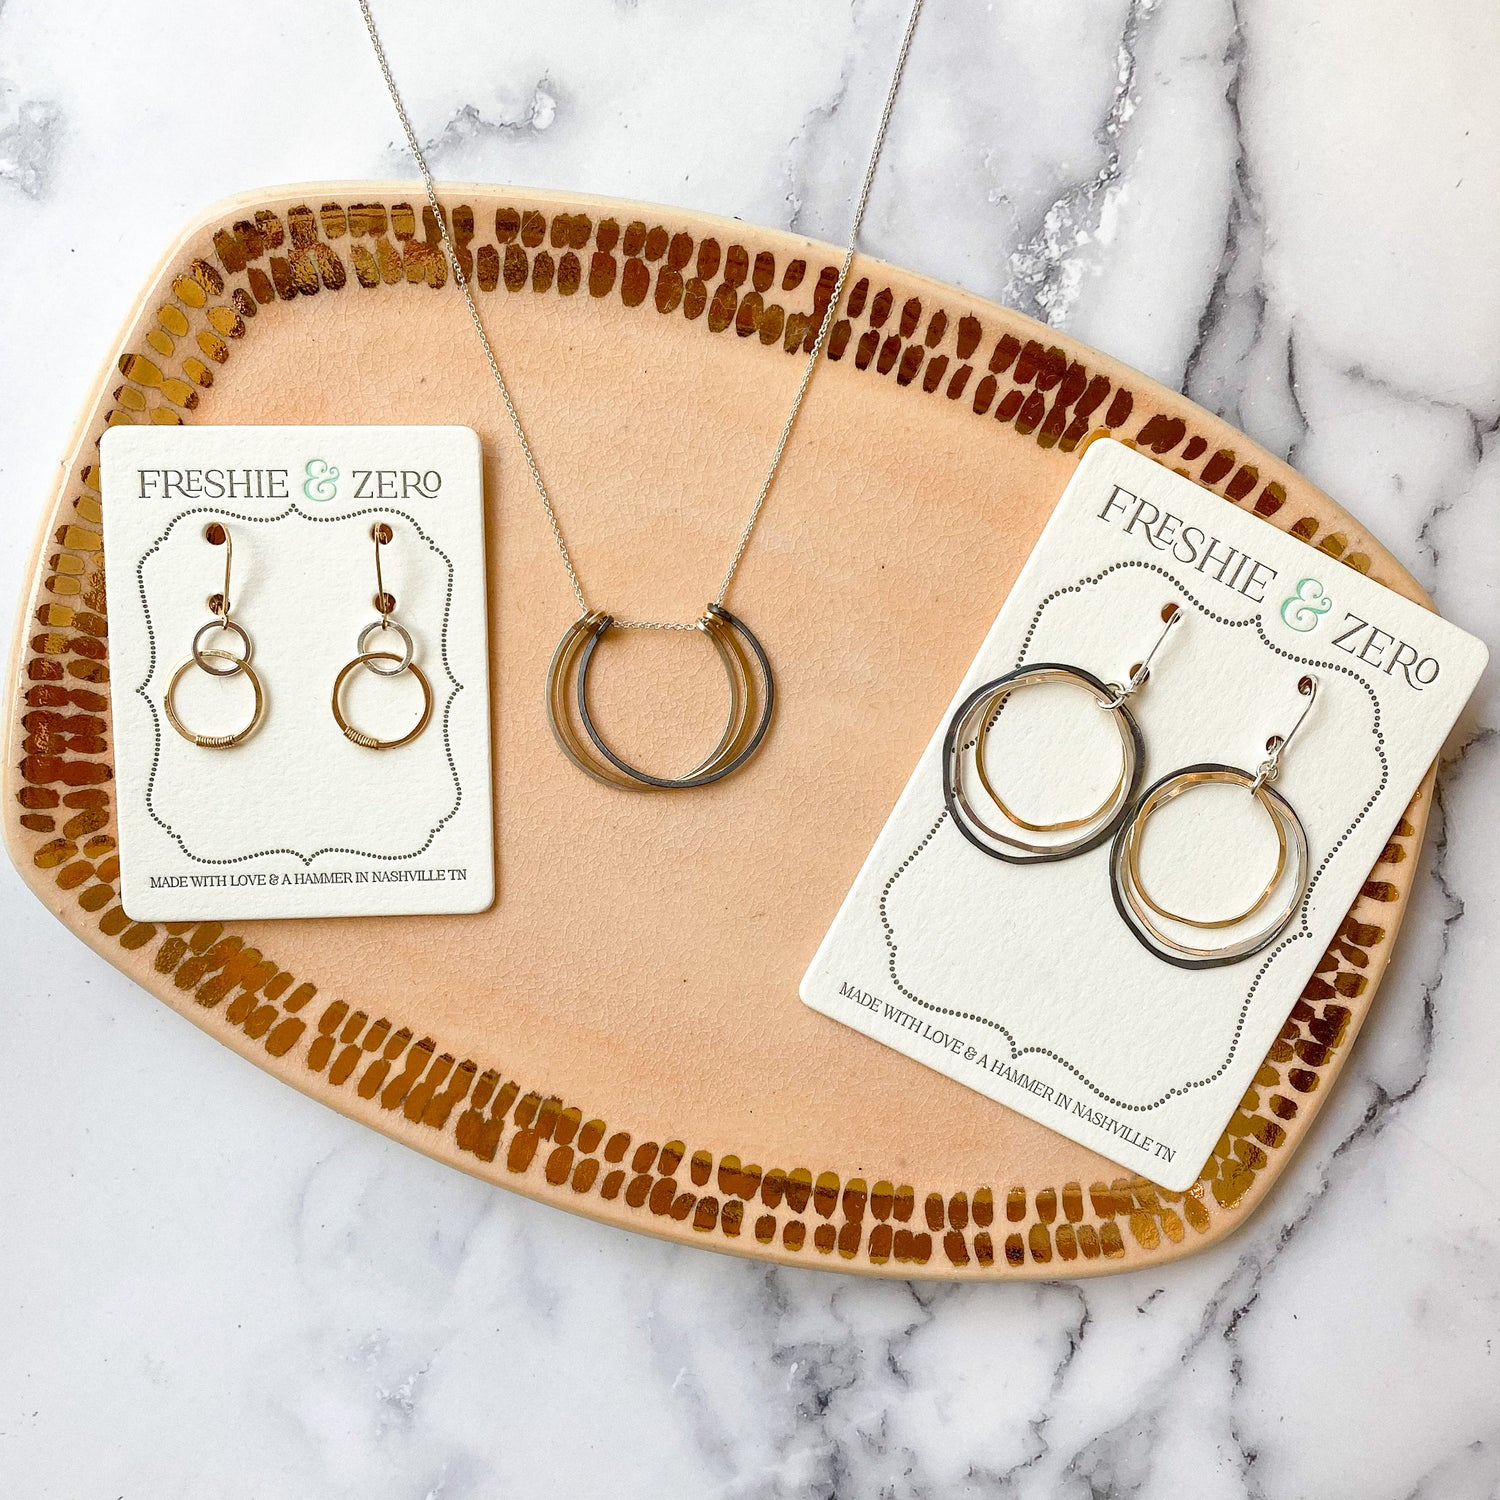 Freshie & Zero Caldera Earrings, mixed metals